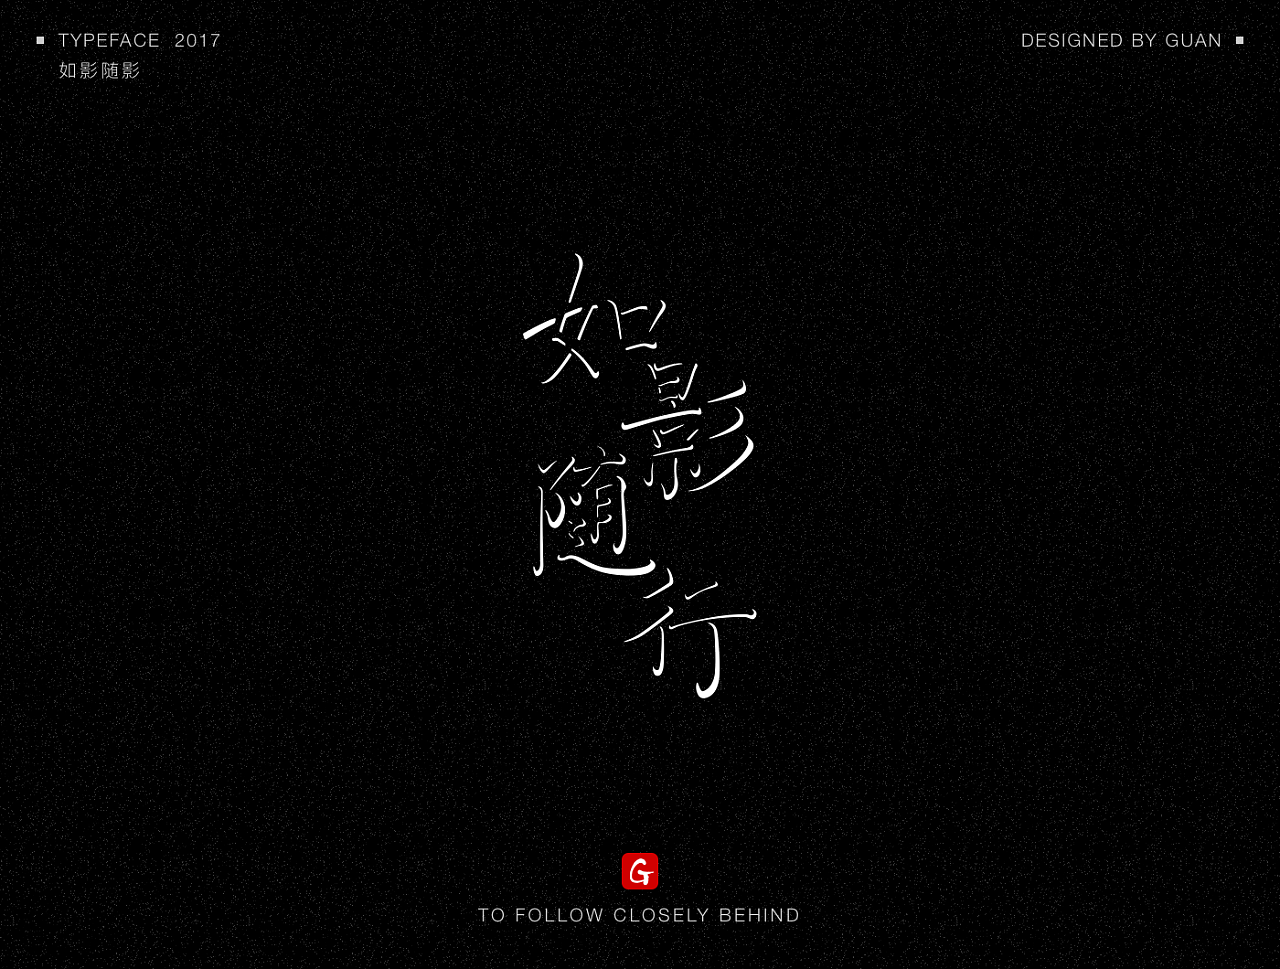 chinesefontdesign.com 2017 09 19 10 54 29 034393 20P Super fashionable Chinese font style design